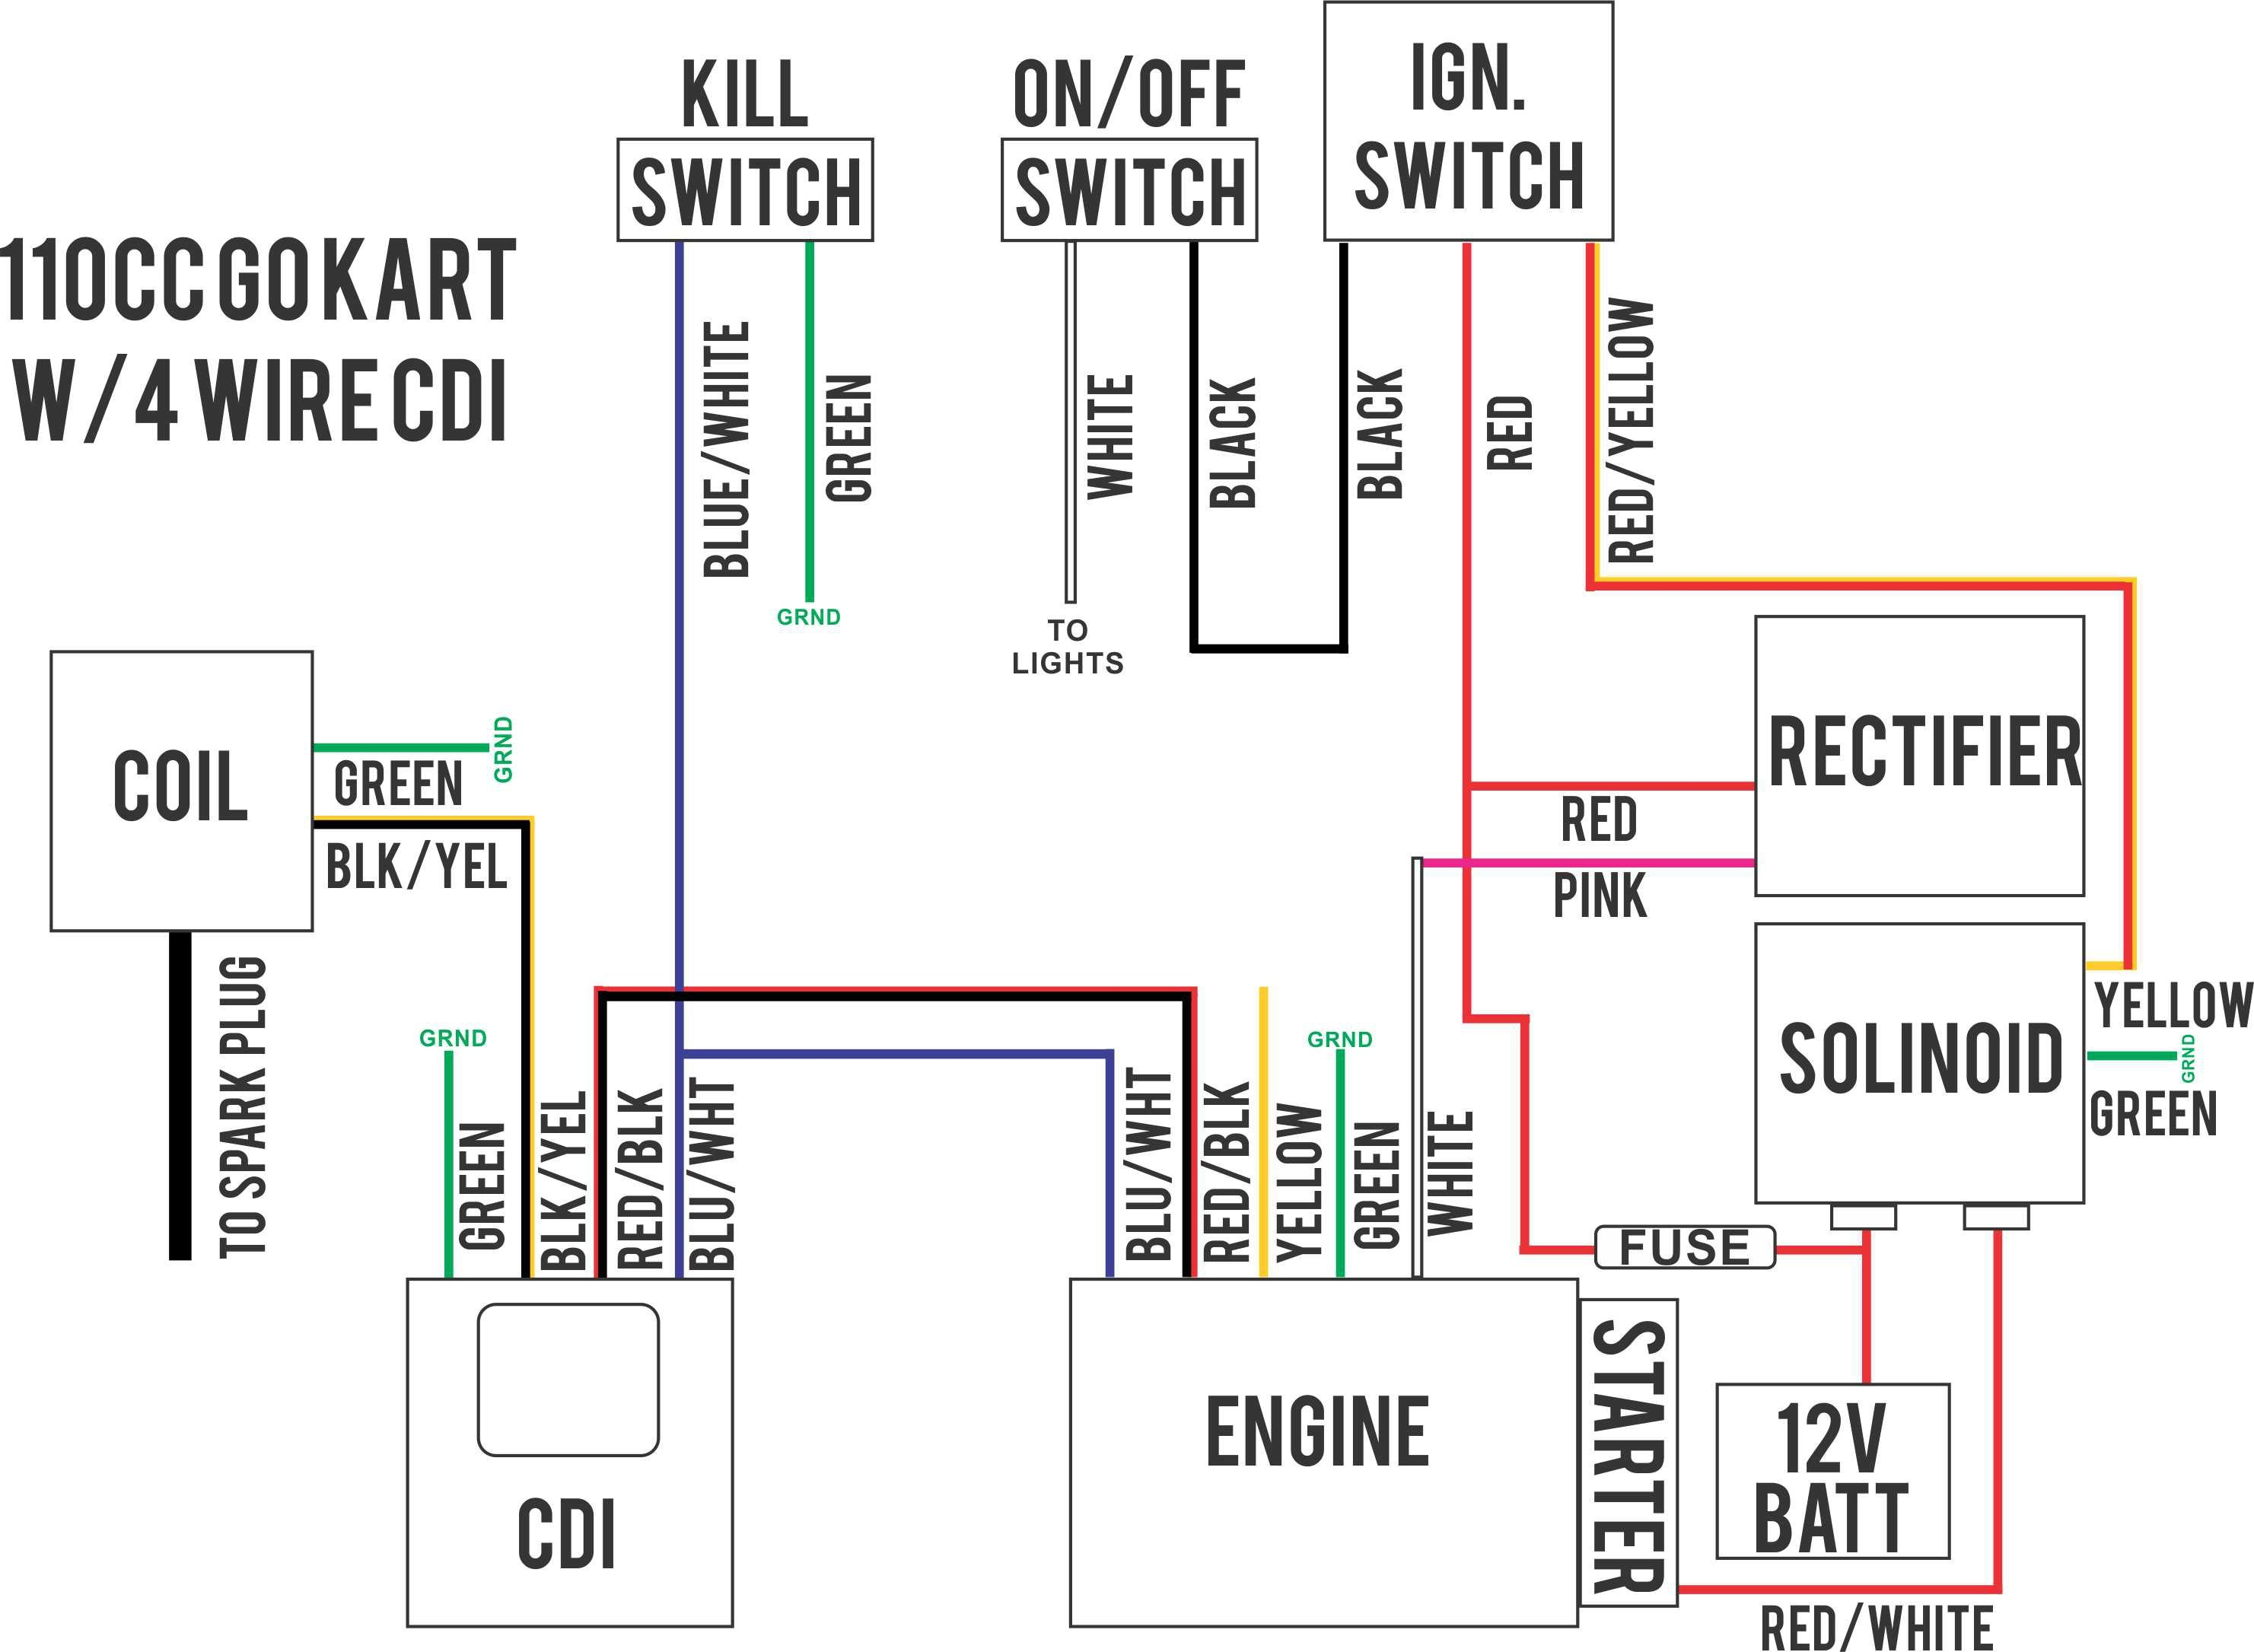 Kymco Wiring Diagram - Data Wiring Diagram Today - Kawasaki Bayou 220 Wiring Diagram